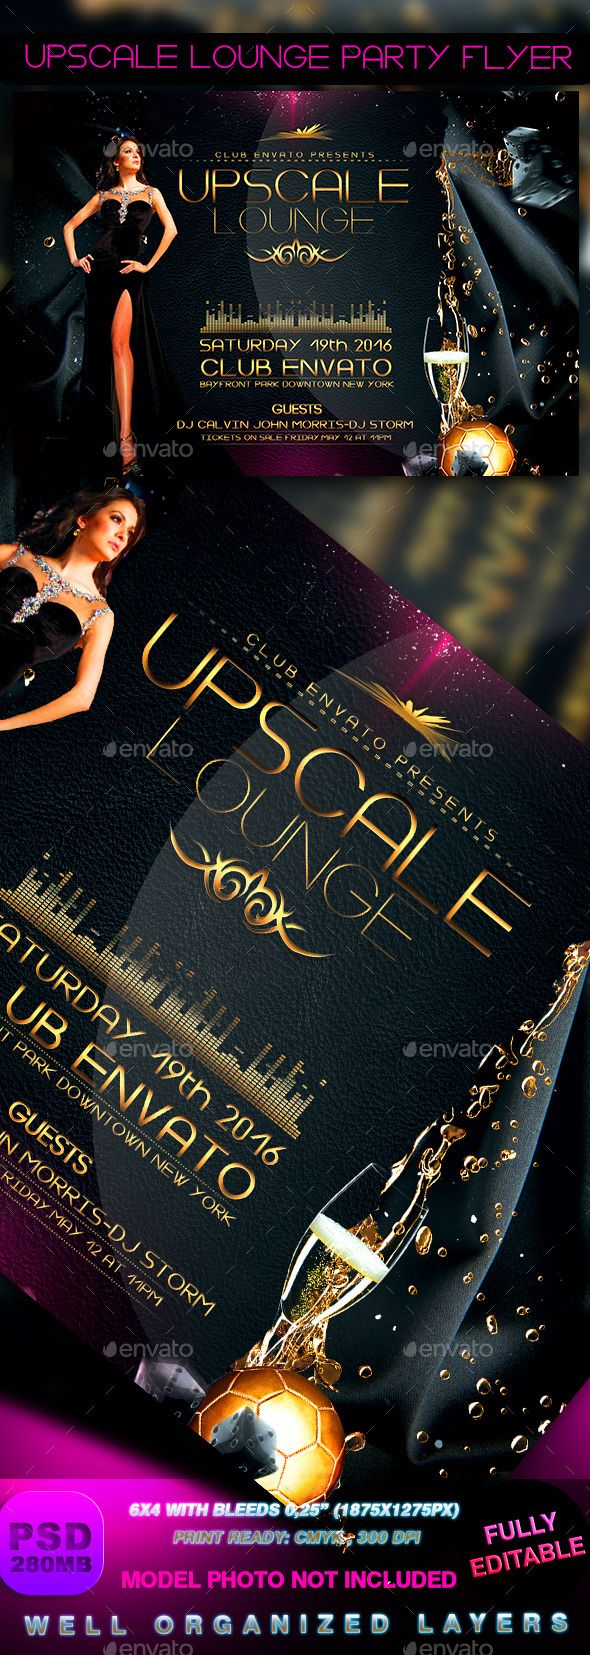 Upscale Lounge Party Flyer